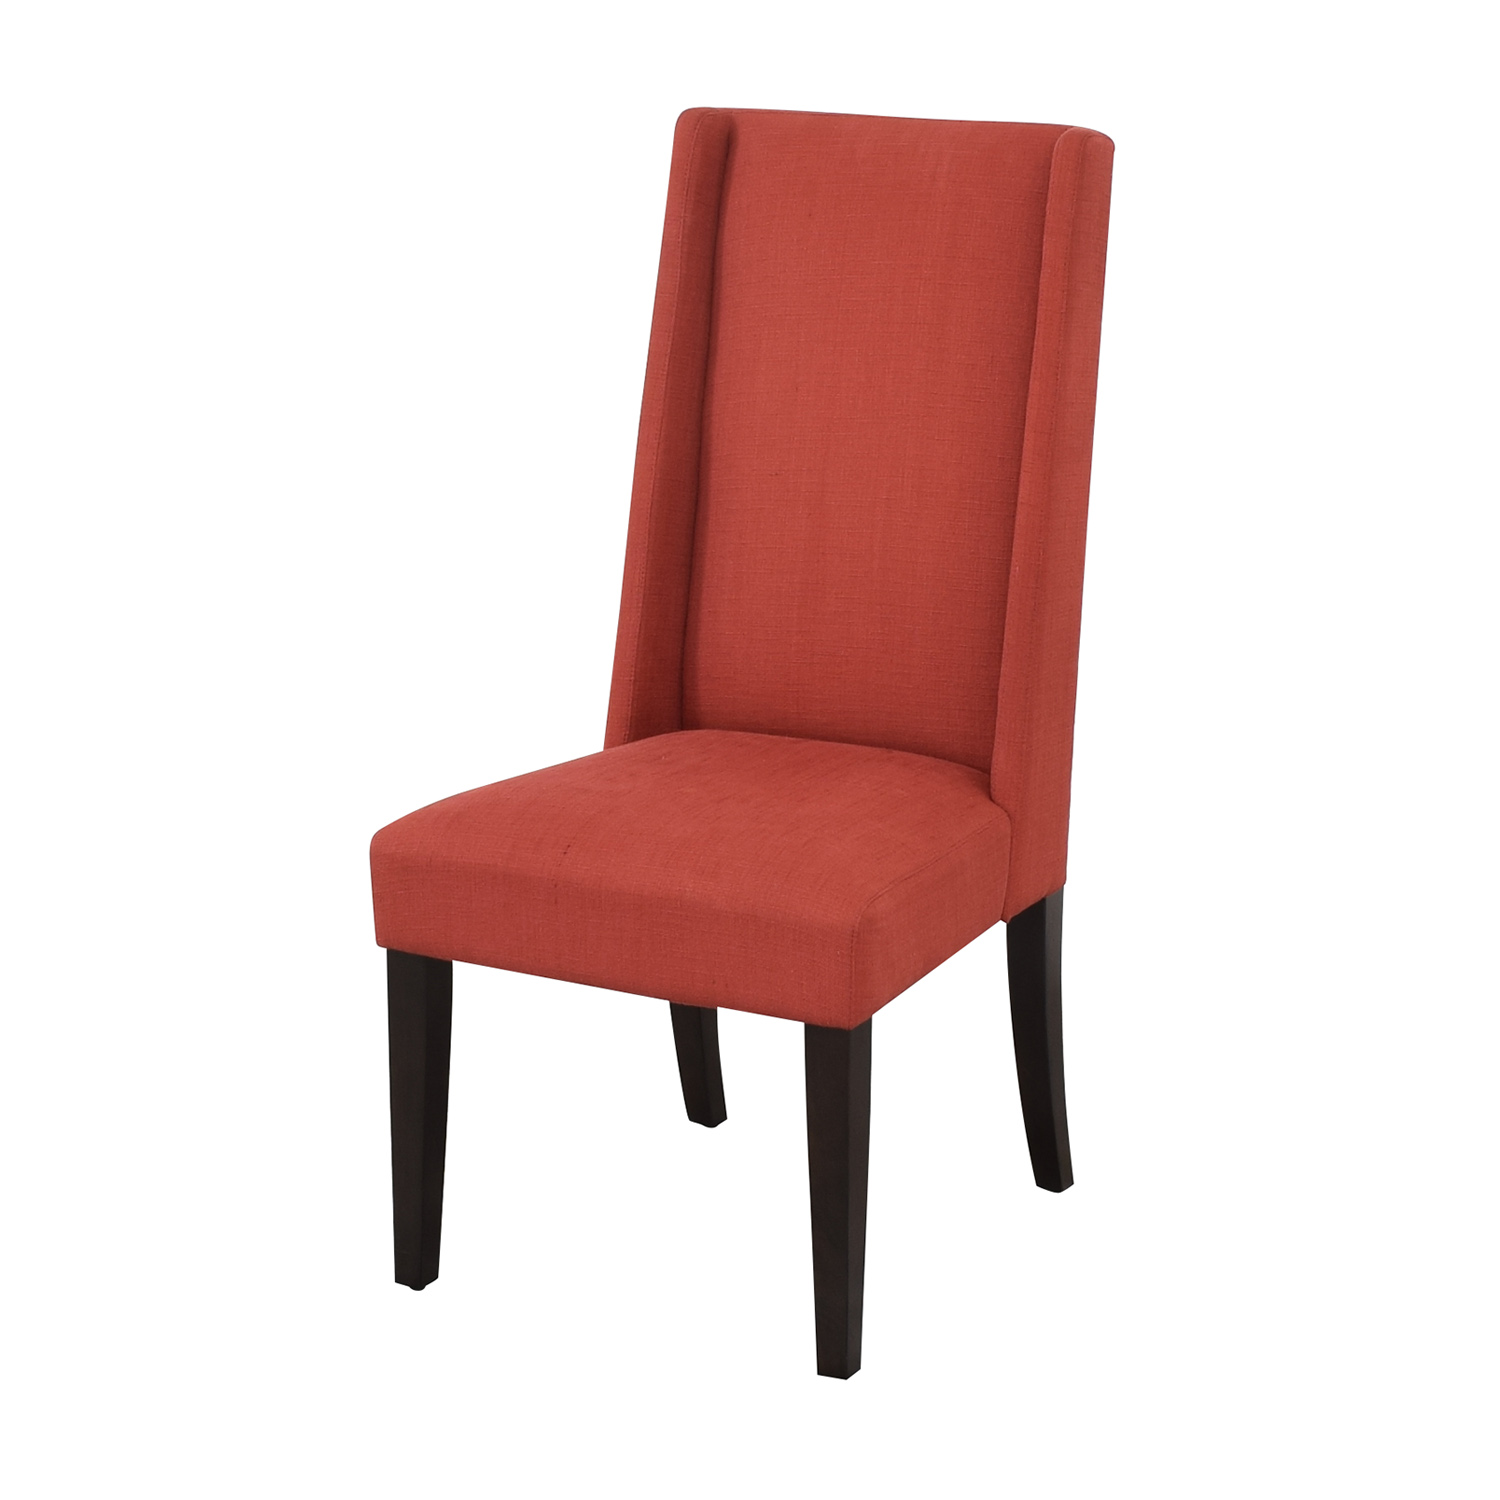 West Elm West Elm Willoughby Dining Chairs red and black